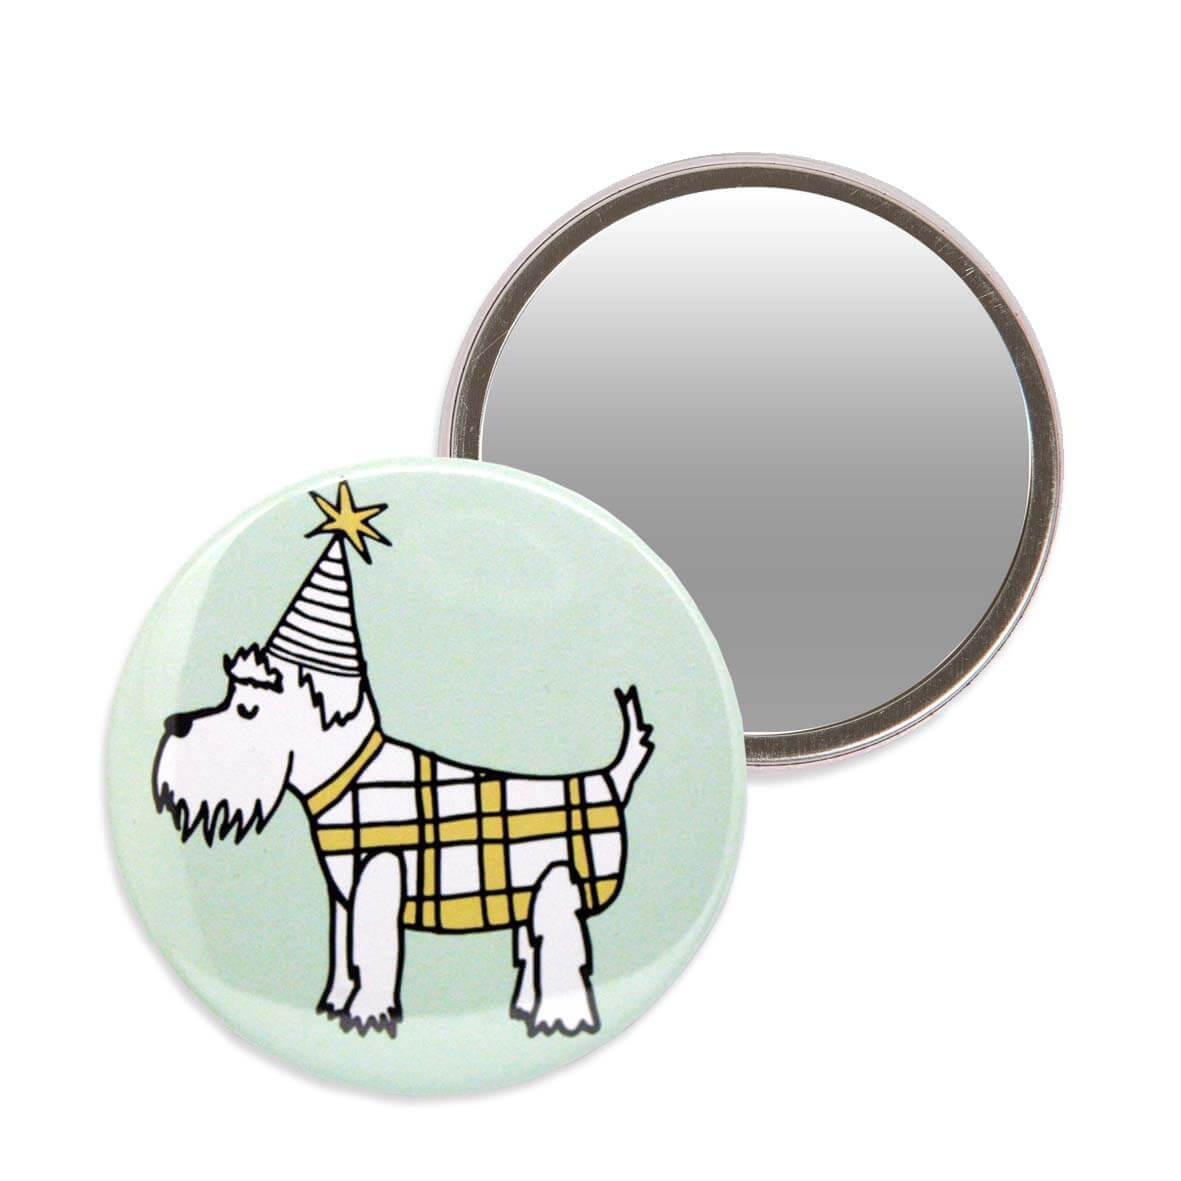 Green makeup mirror with an illustration of a schnauzer